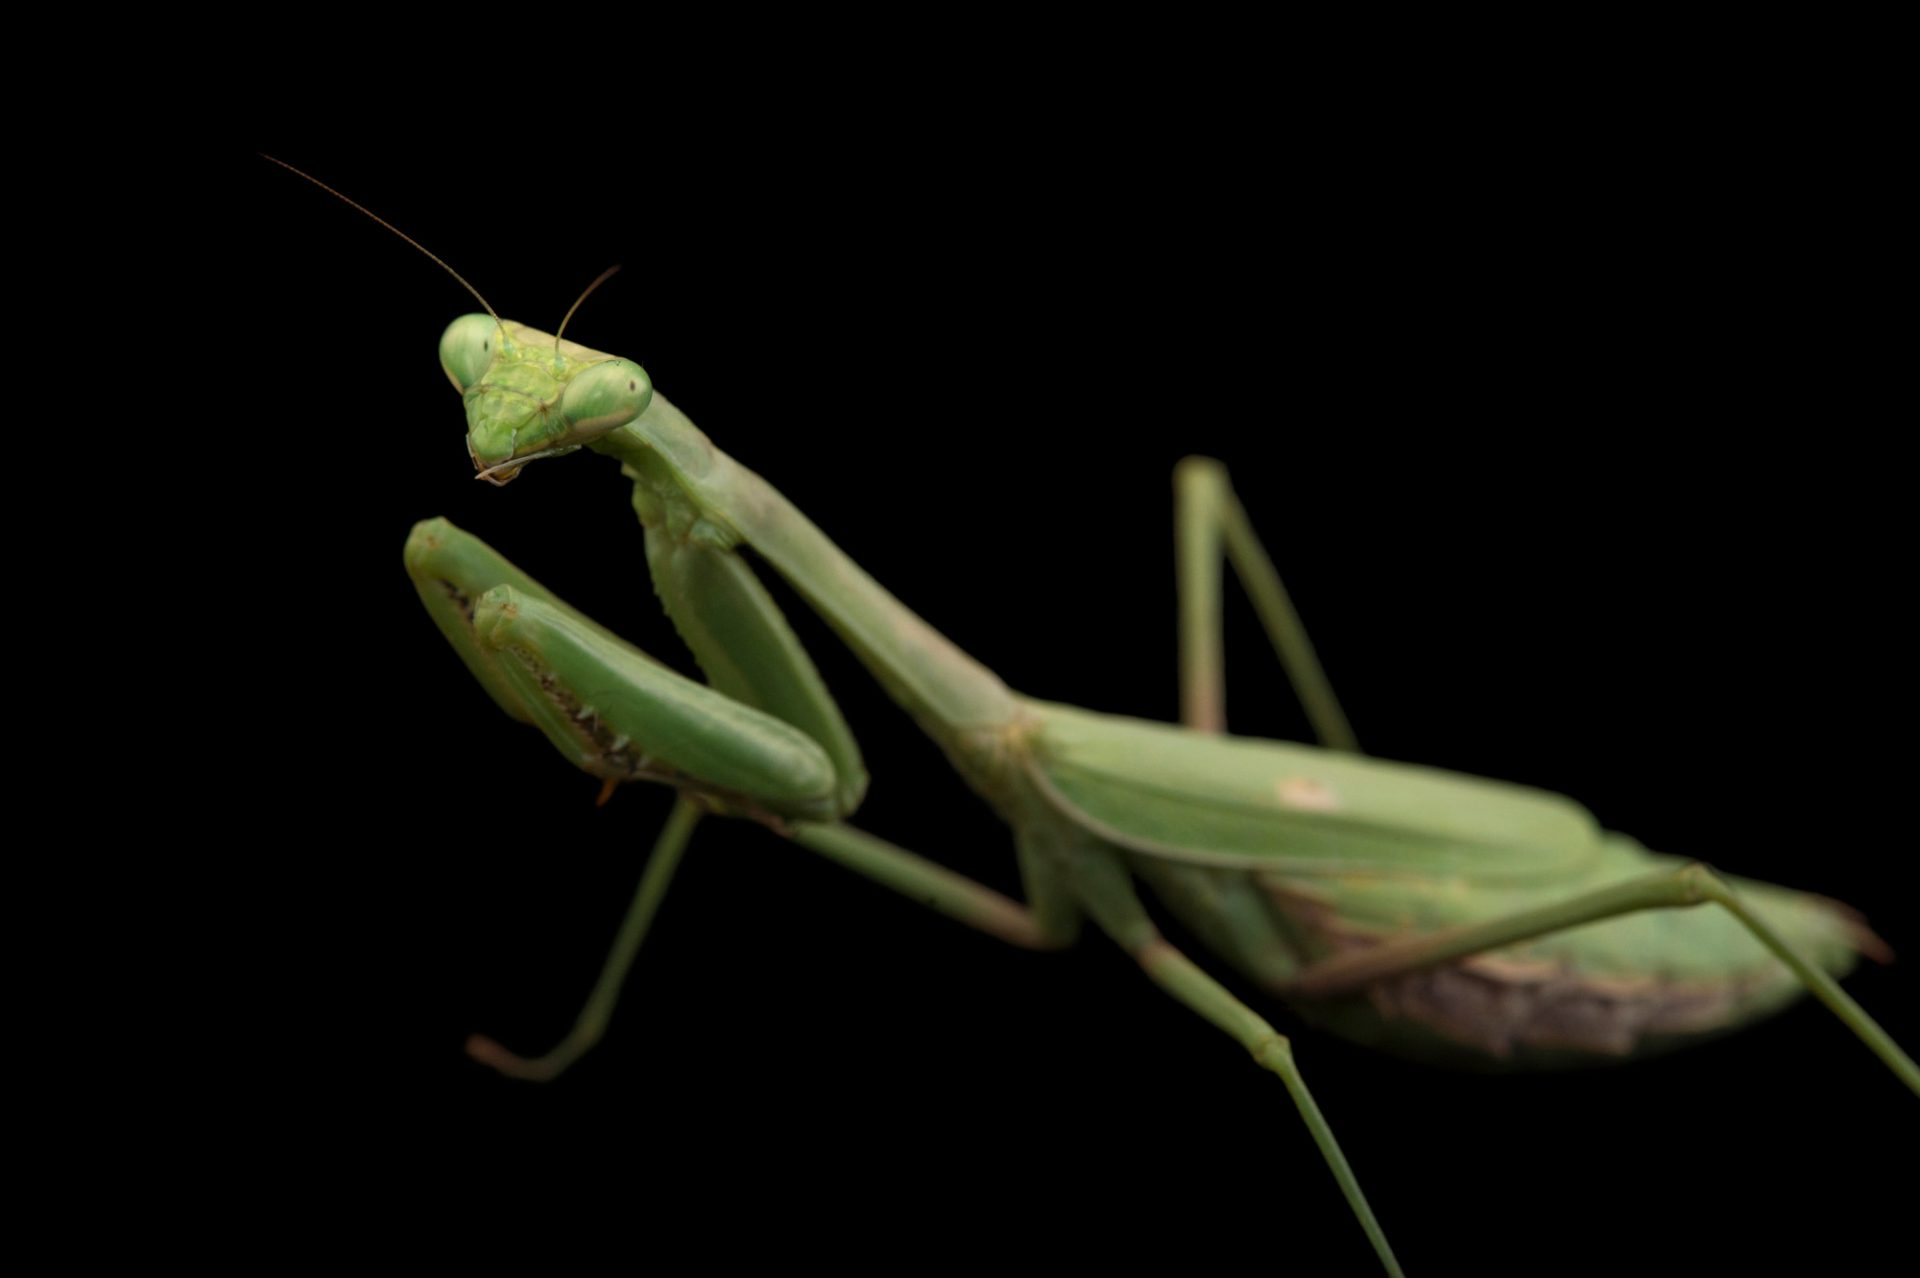 Picture of a praying mantis (Mantis religiosa) at the Houston Zoo.